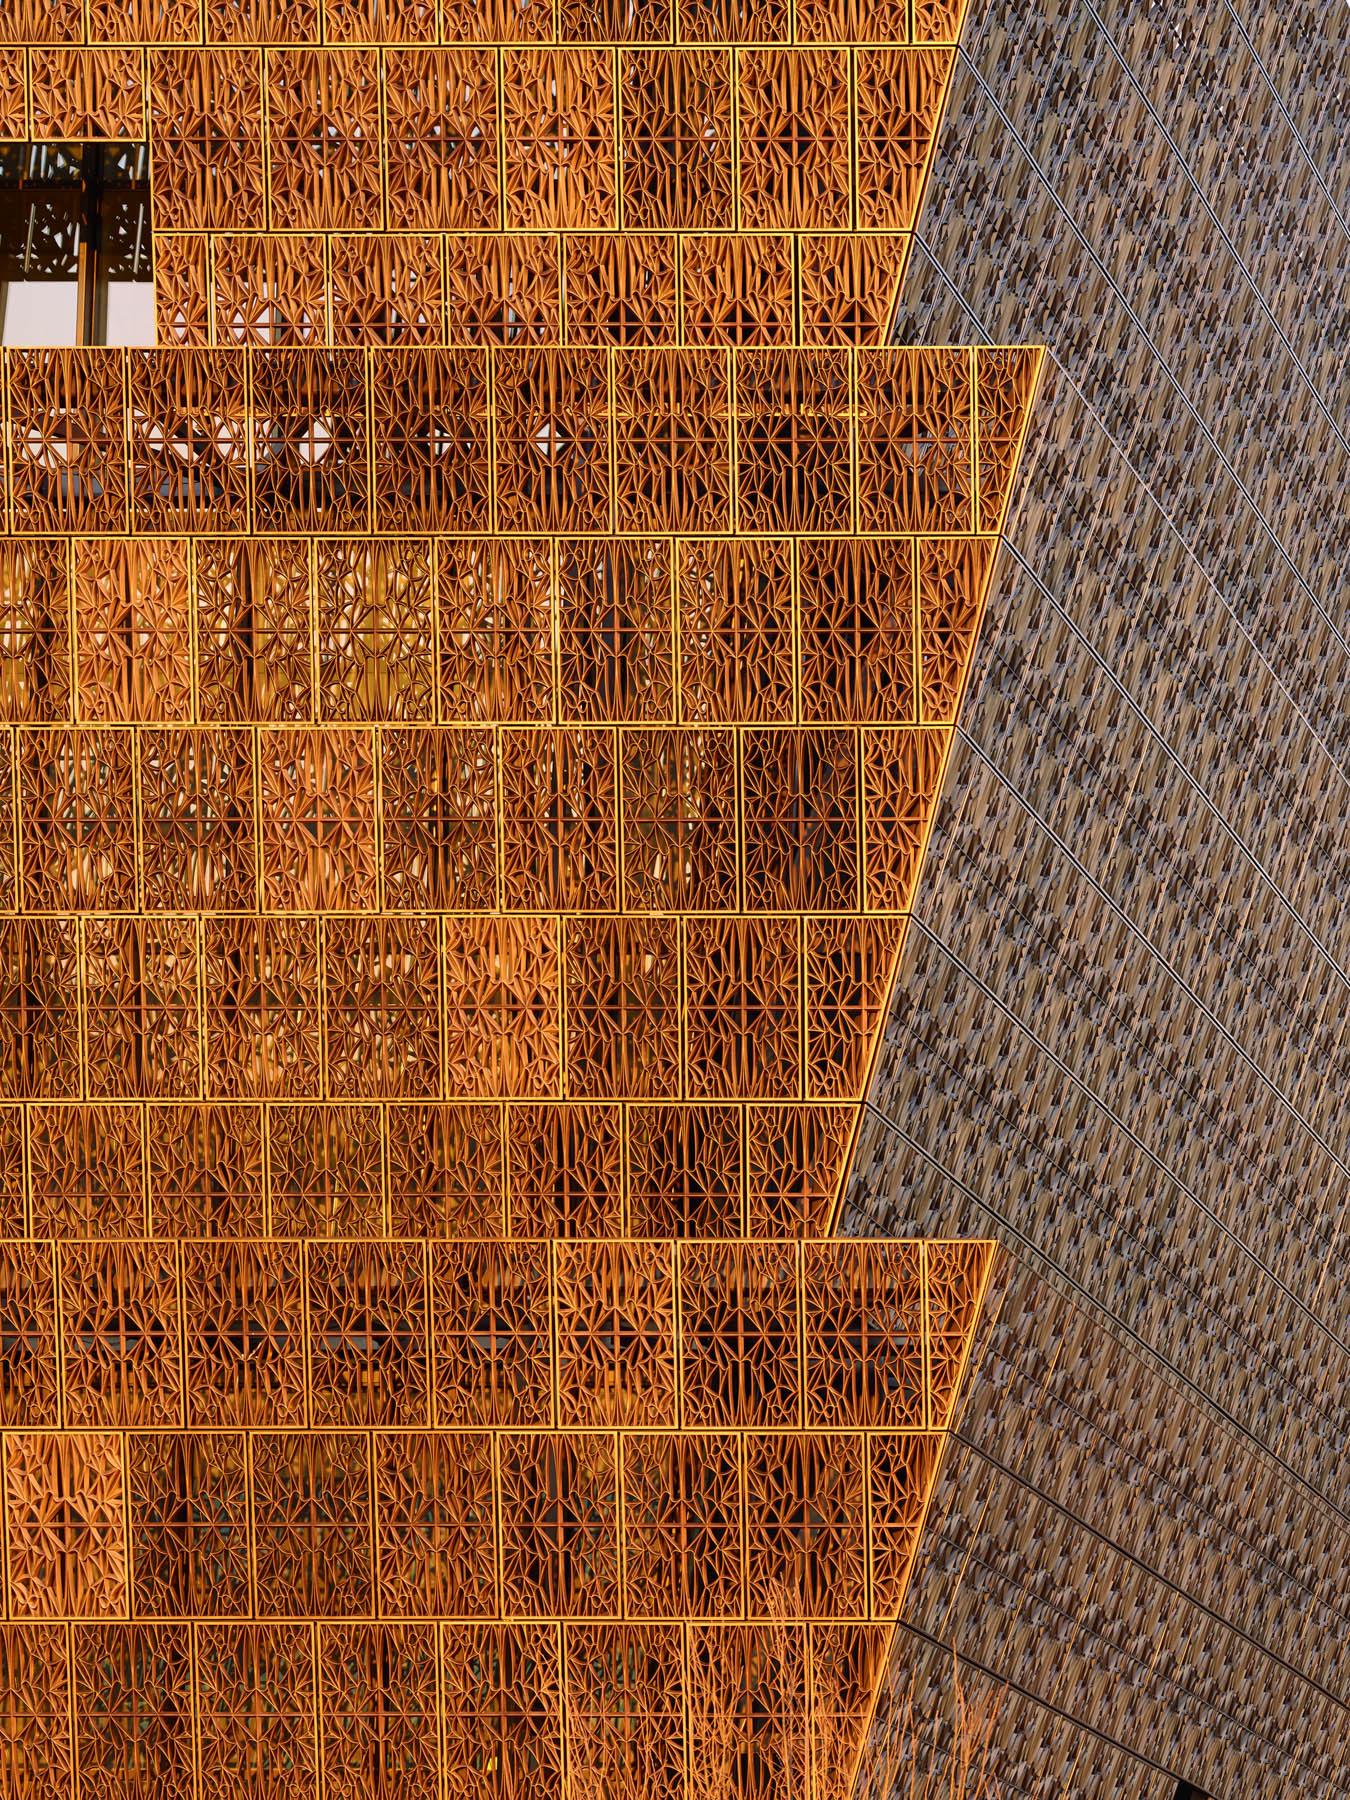 Building exterior (© Alan Karchmer/Smithsonian Institution)